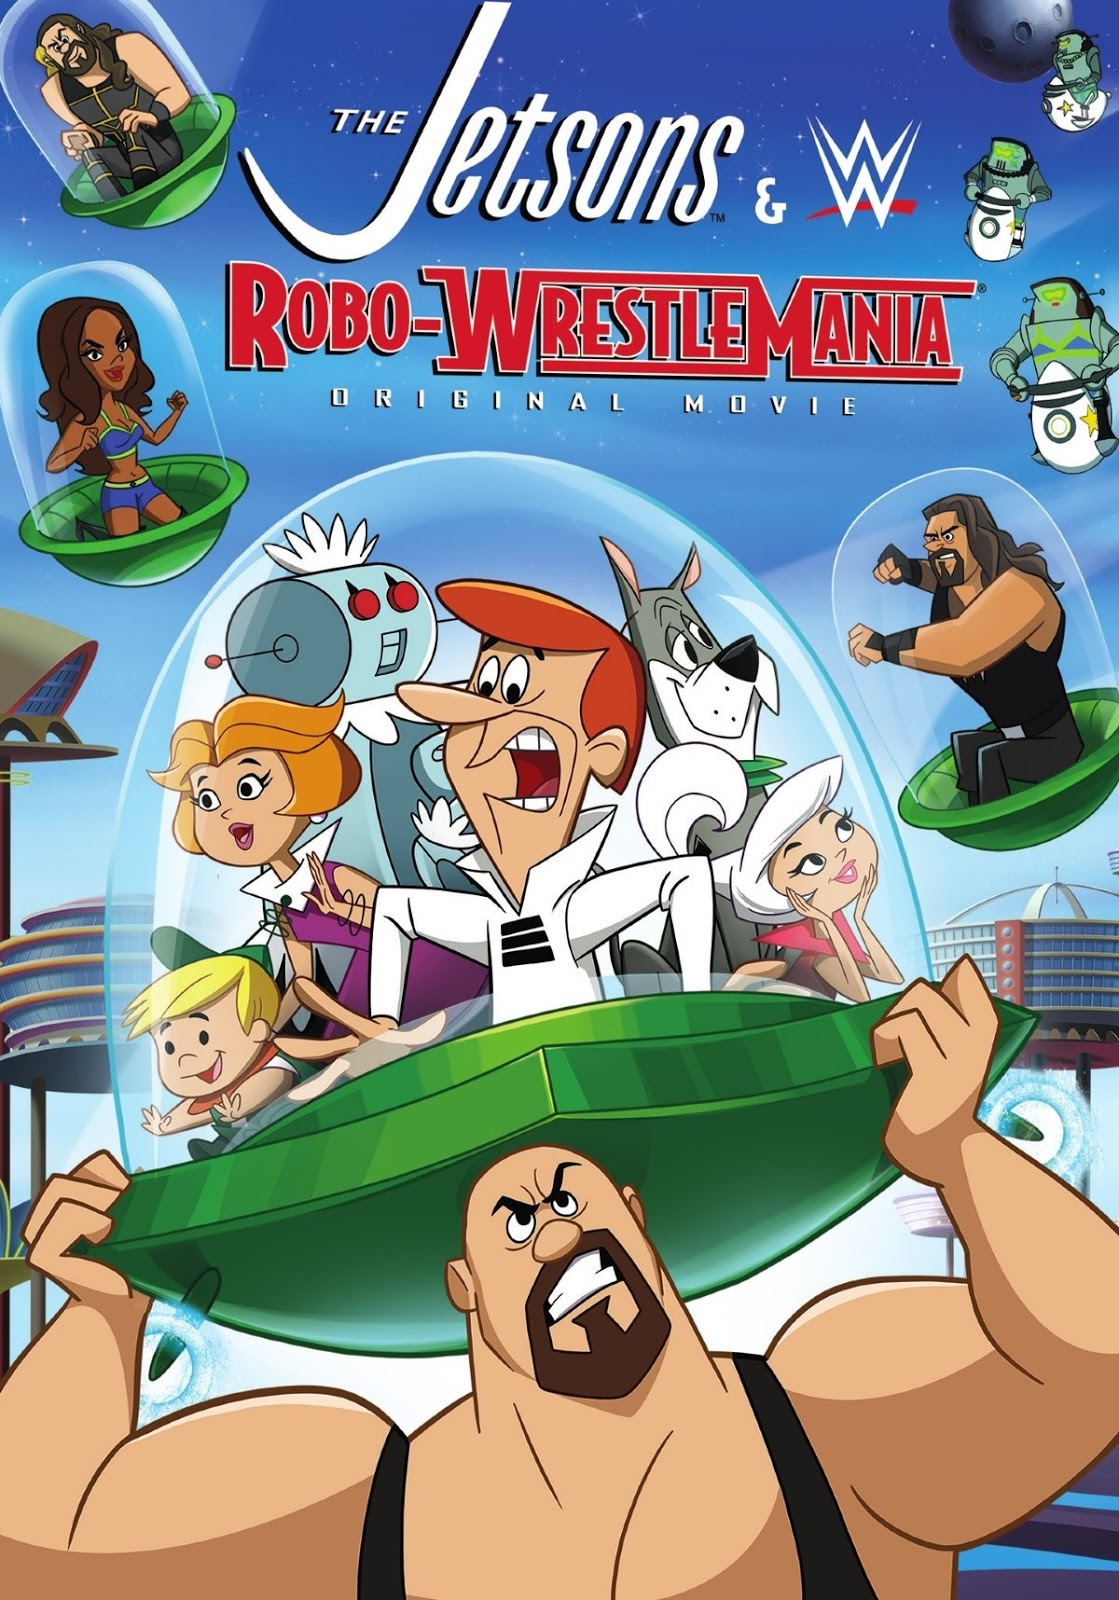 Watch The Jetsons & WWE: Robo-WrestleMania! (2017) Online For Free Full Movie English Stream